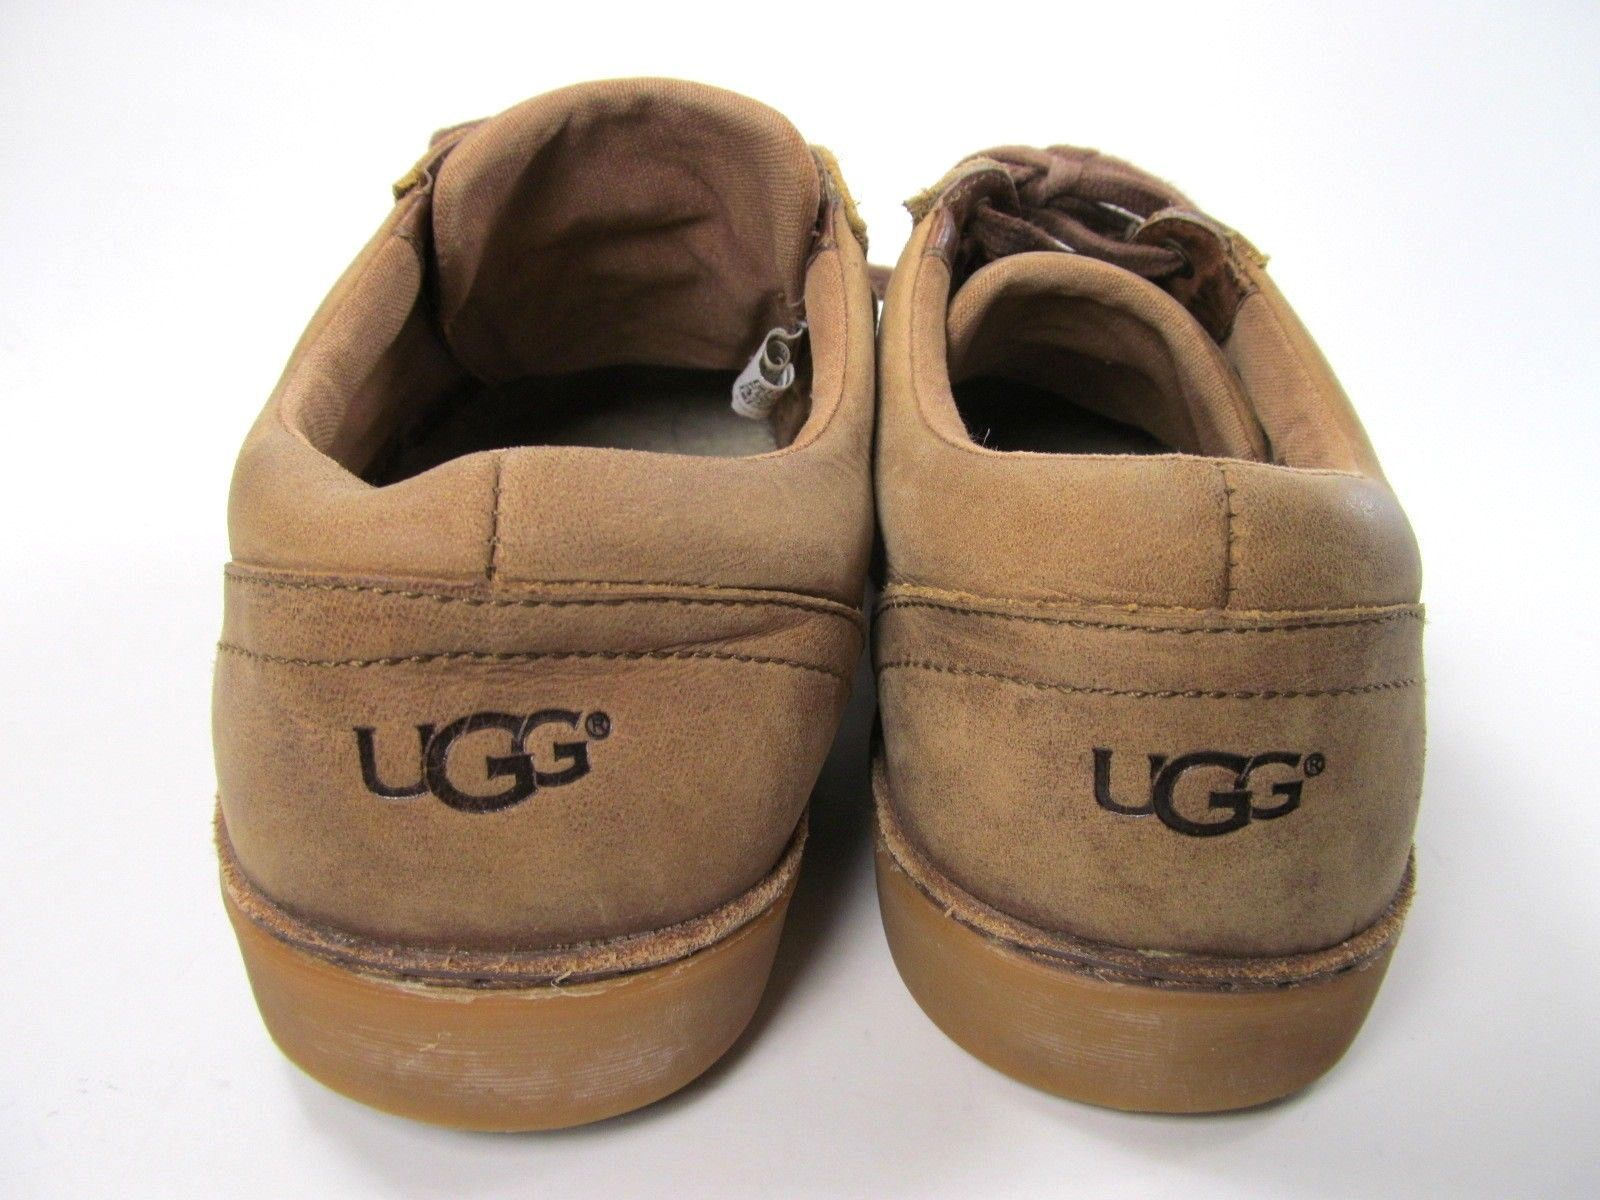 UGG  Australia Tan Distressed Leather Sneakers Mens size 7.5 (EU 40) S/N 1006875